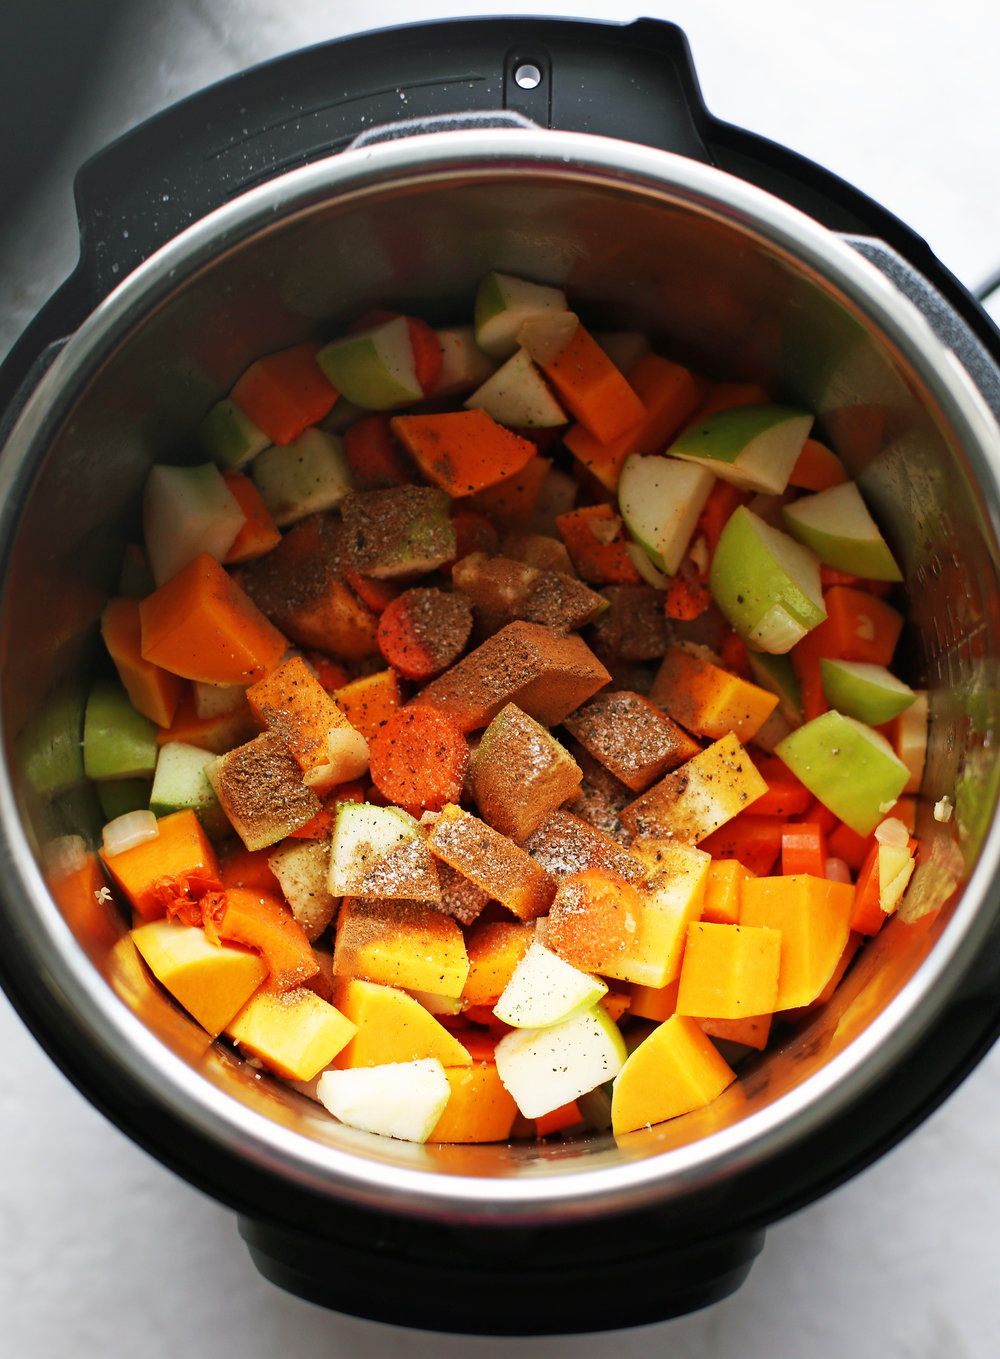 Sautéed onions, ginger, and garlic with chopped butternut squash, granny smith apples, carrots, and spices in the Instant Pot.